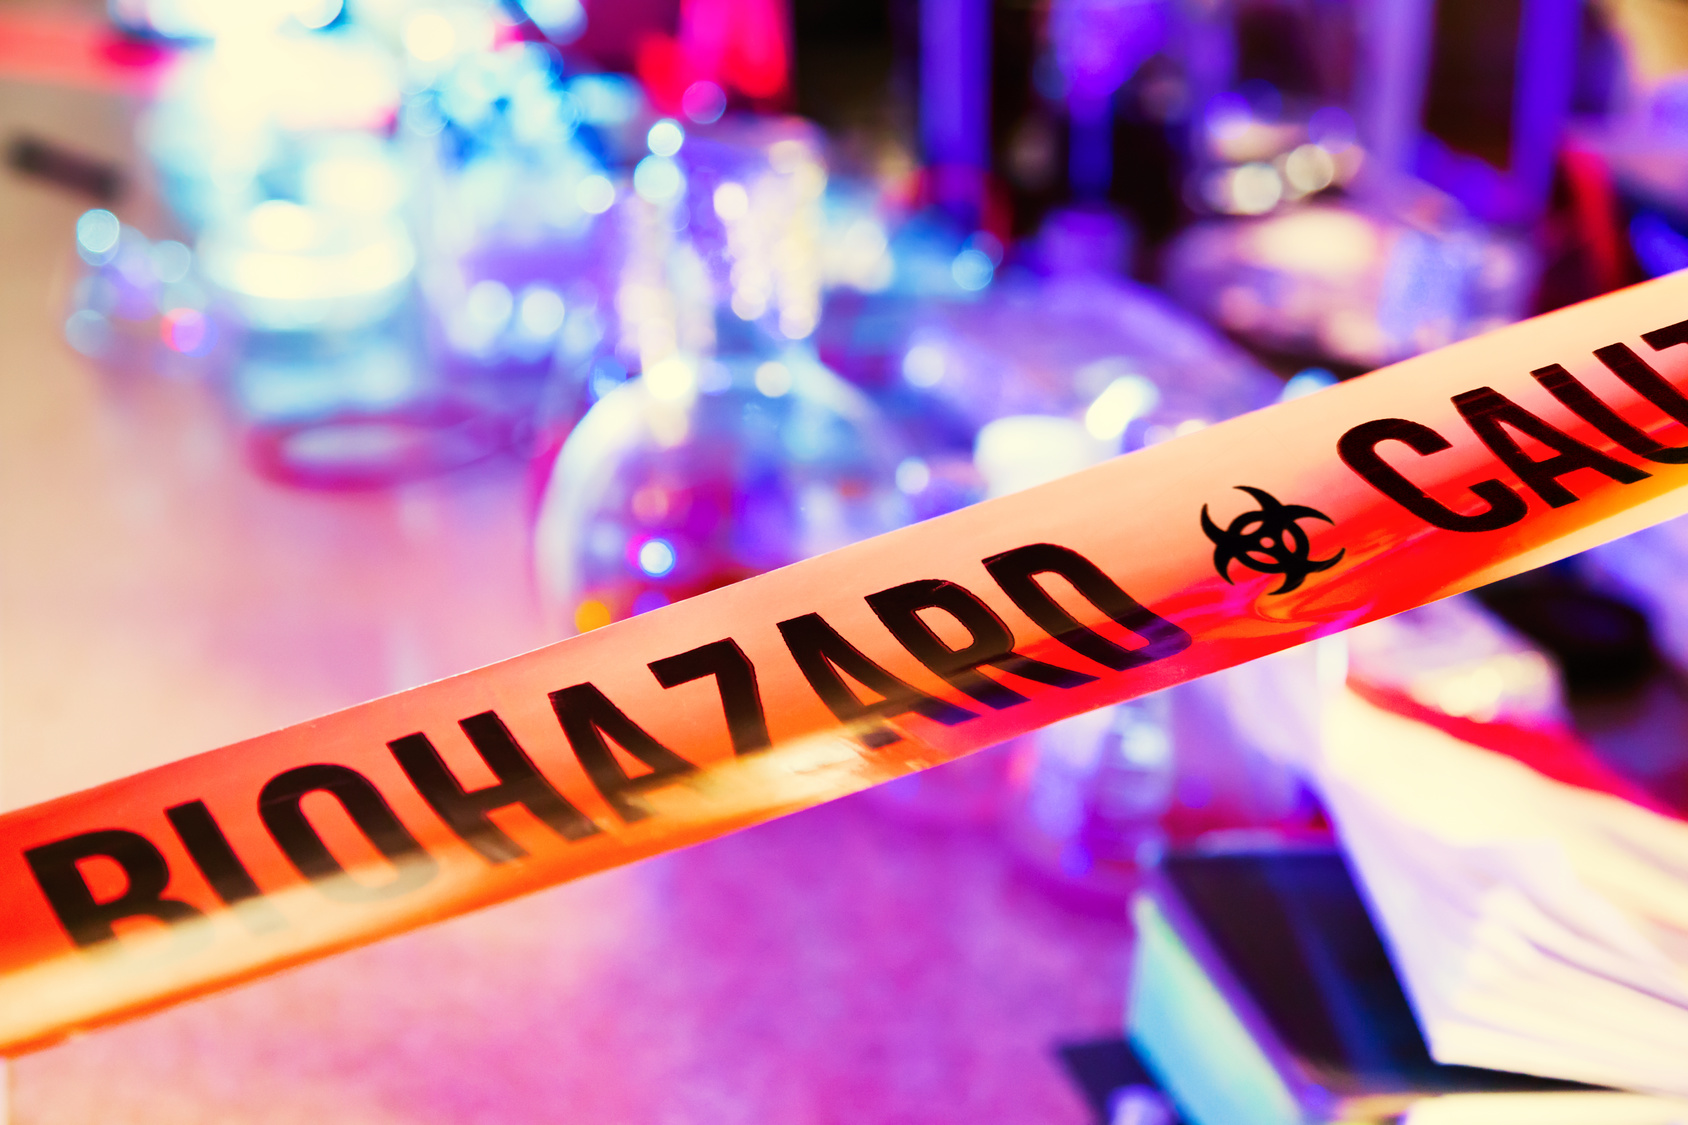 Caution-Biohazards-Tape-Crime-Scene